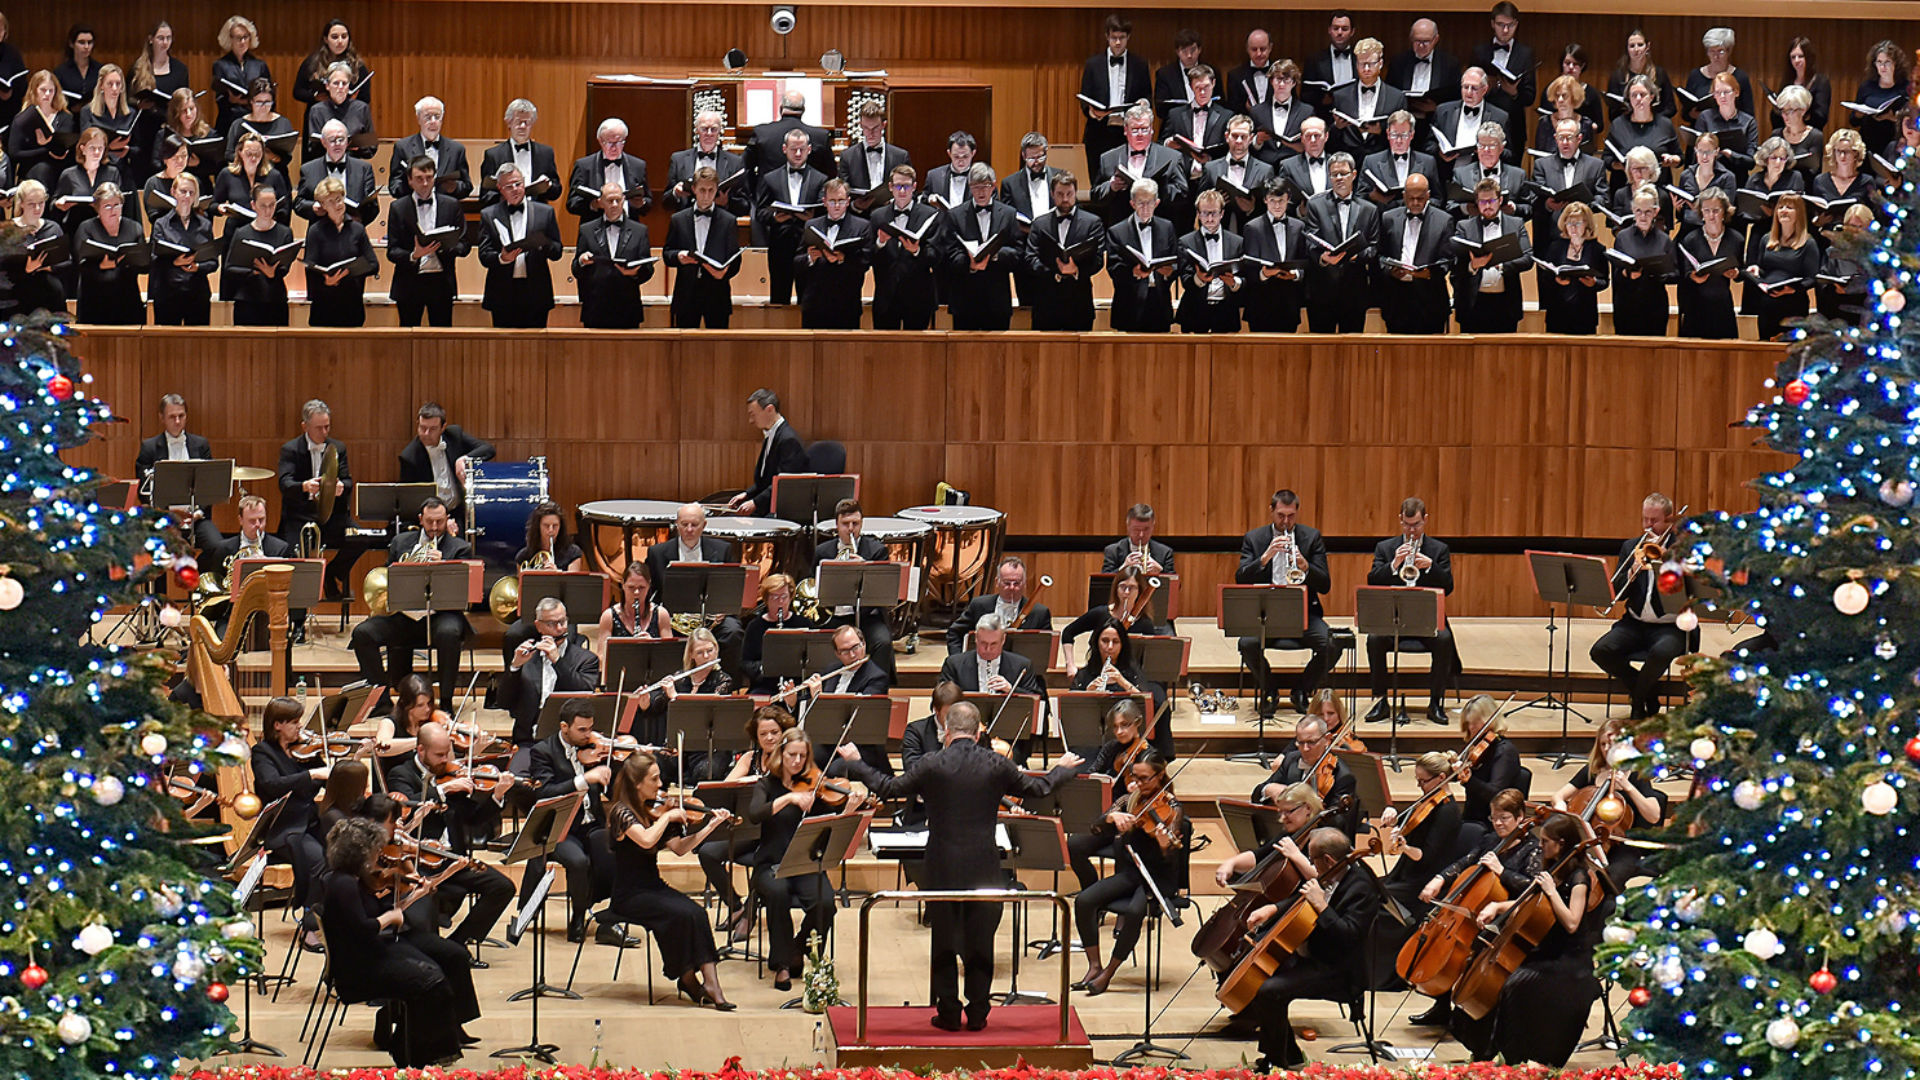 The Philharmonia Orchestra performing a Christmas concert, with two Christmas trees on the left and right hand-side of the photo.